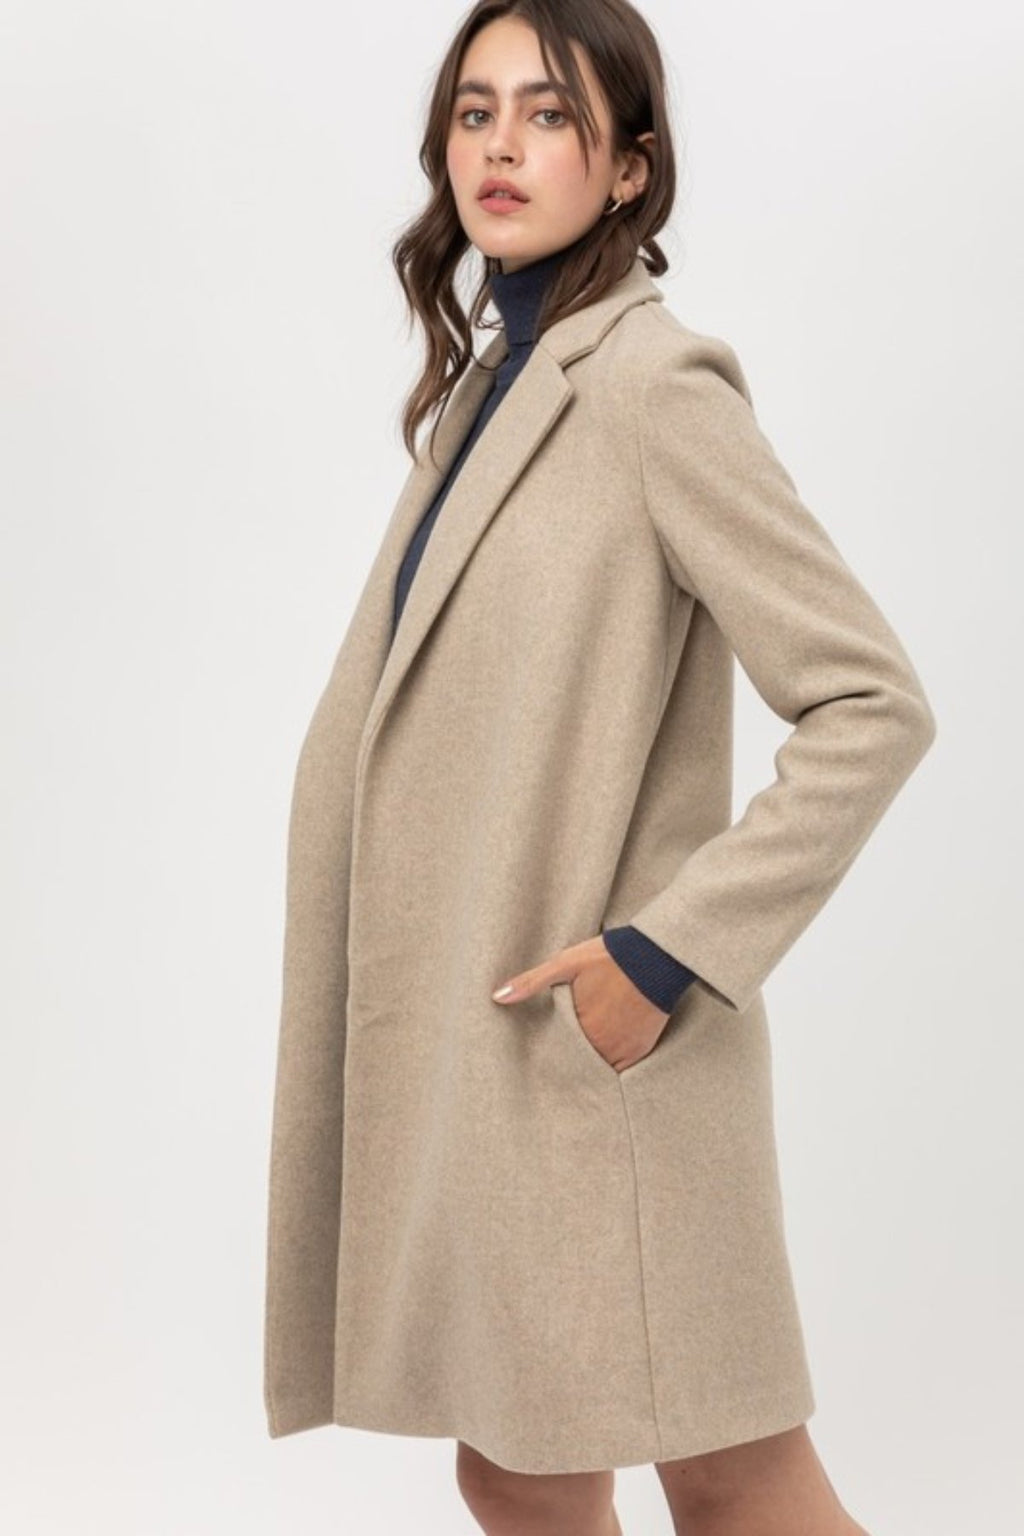 RISKY BUSINESS LONG LINE COAT